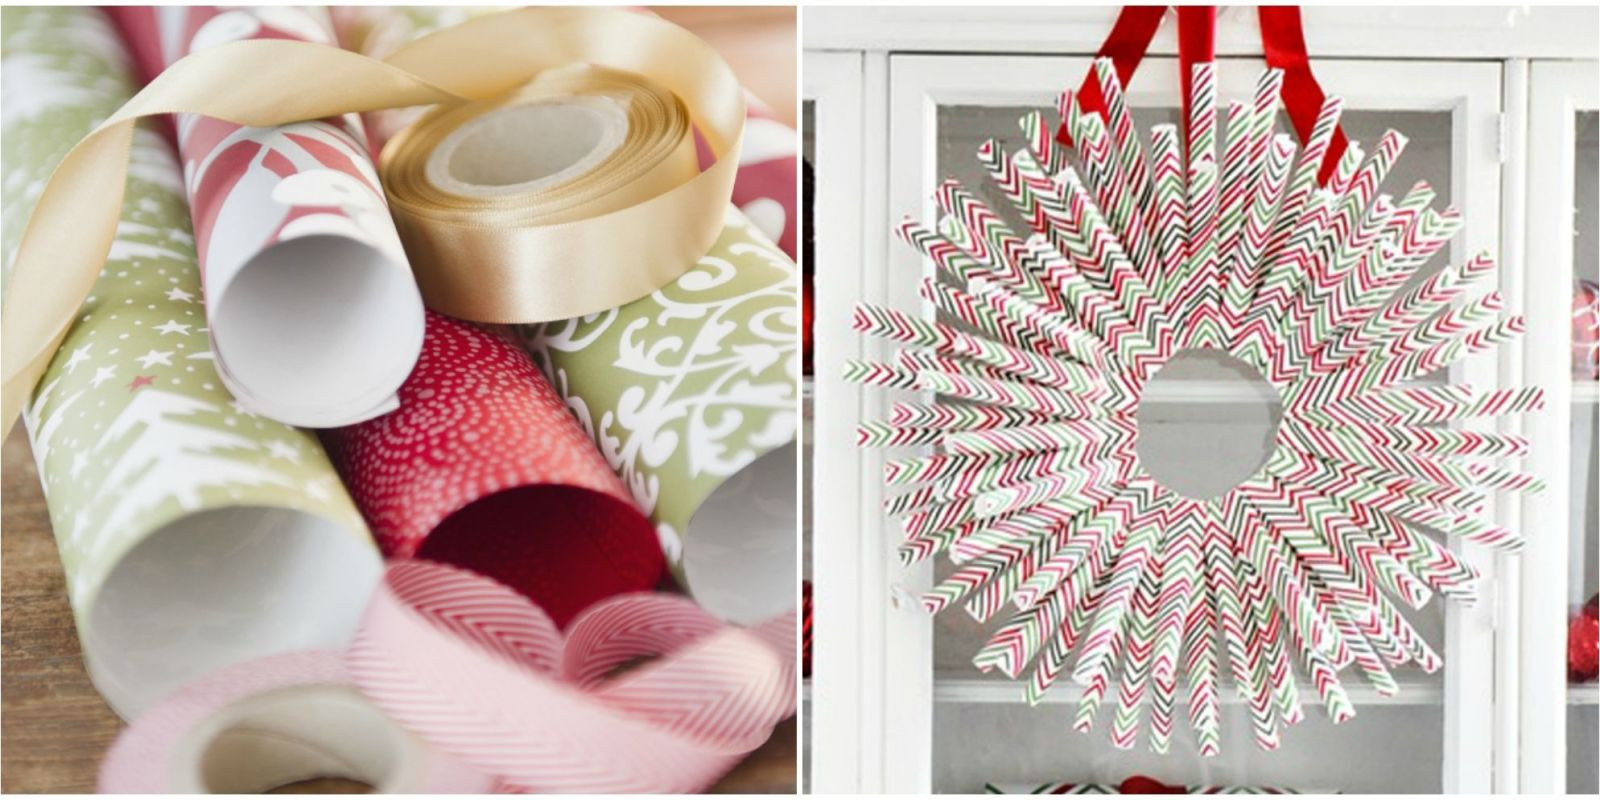 Best ideas about DIY Christmas Crafts . Save or Pin 51 Trash to Treasure Christmas Crafts DIY Holiday Now.